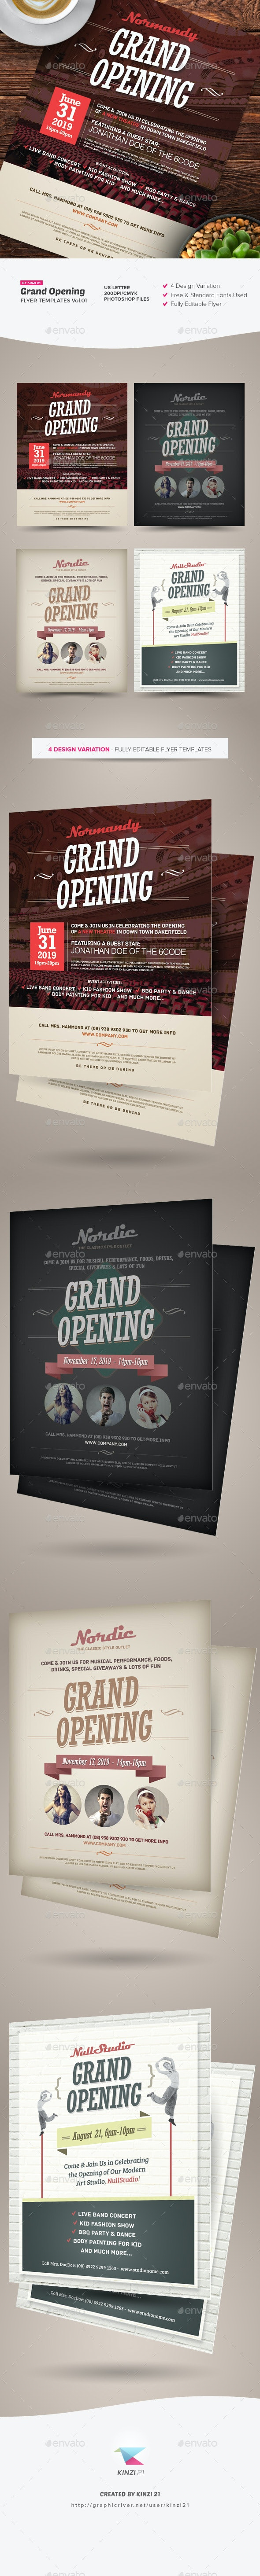 Grand Opening Flyers Vol.01 - Corporate Flyers